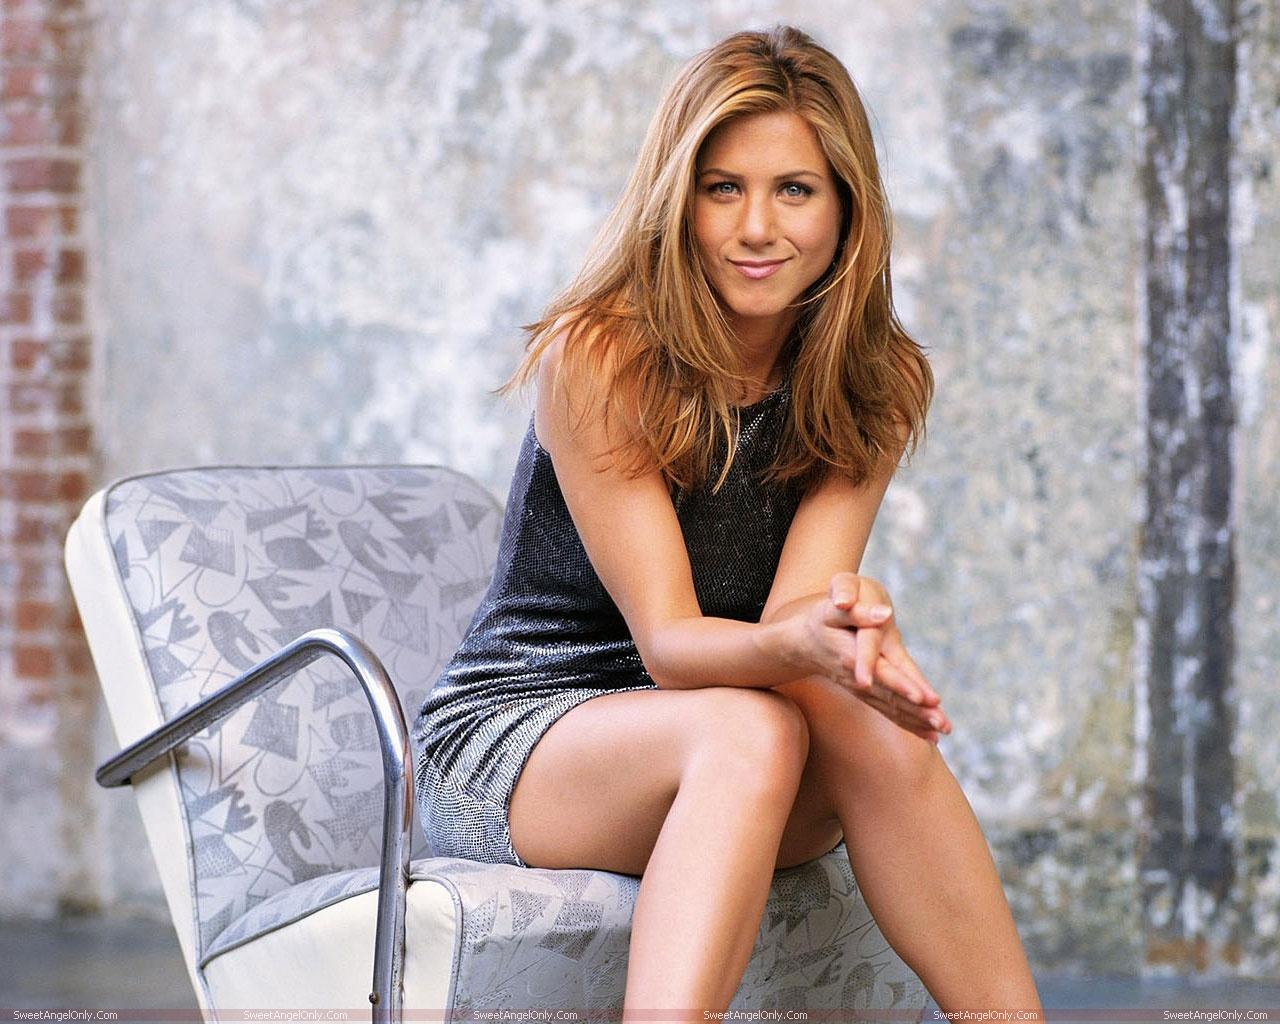 http://4.bp.blogspot.com/-k4EKGlAyX3A/TWVn29P5QBI/AAAAAAAAEjY/7ktKmUuDvk8/s1600/actress_jennifer_aniston_hot_wallpapers_in_bikini_sweetangelonly_05.jpg